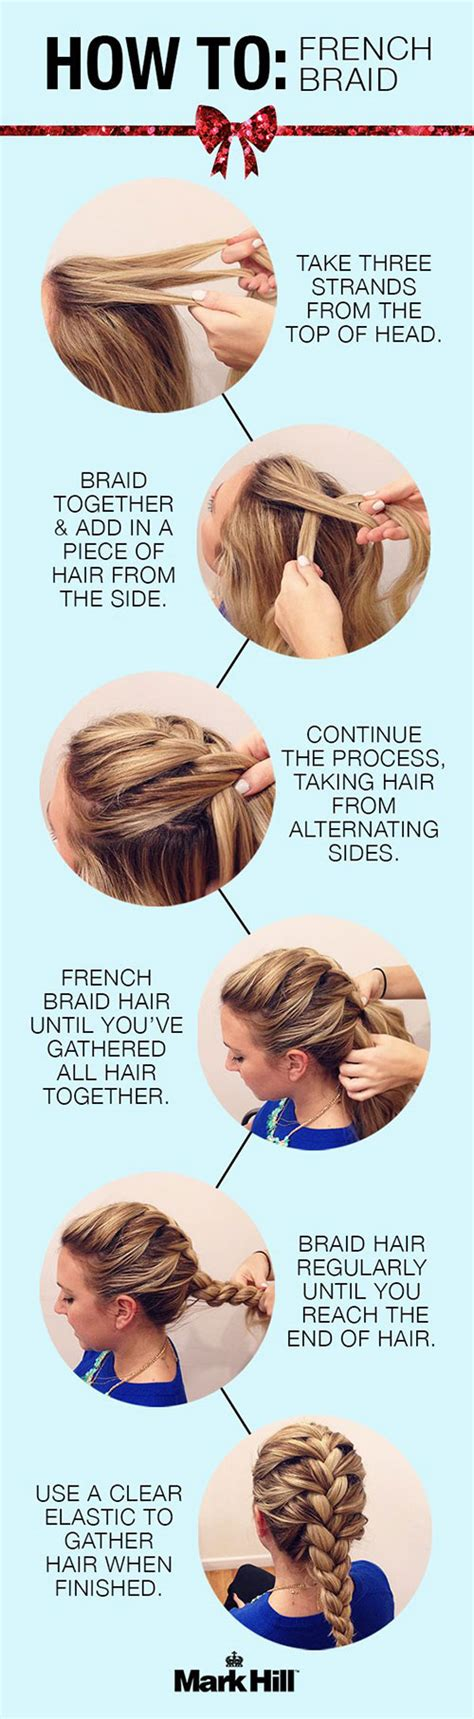 french hairstyle by own step by step easy way 20 easy step by step summer braids style tutorials for